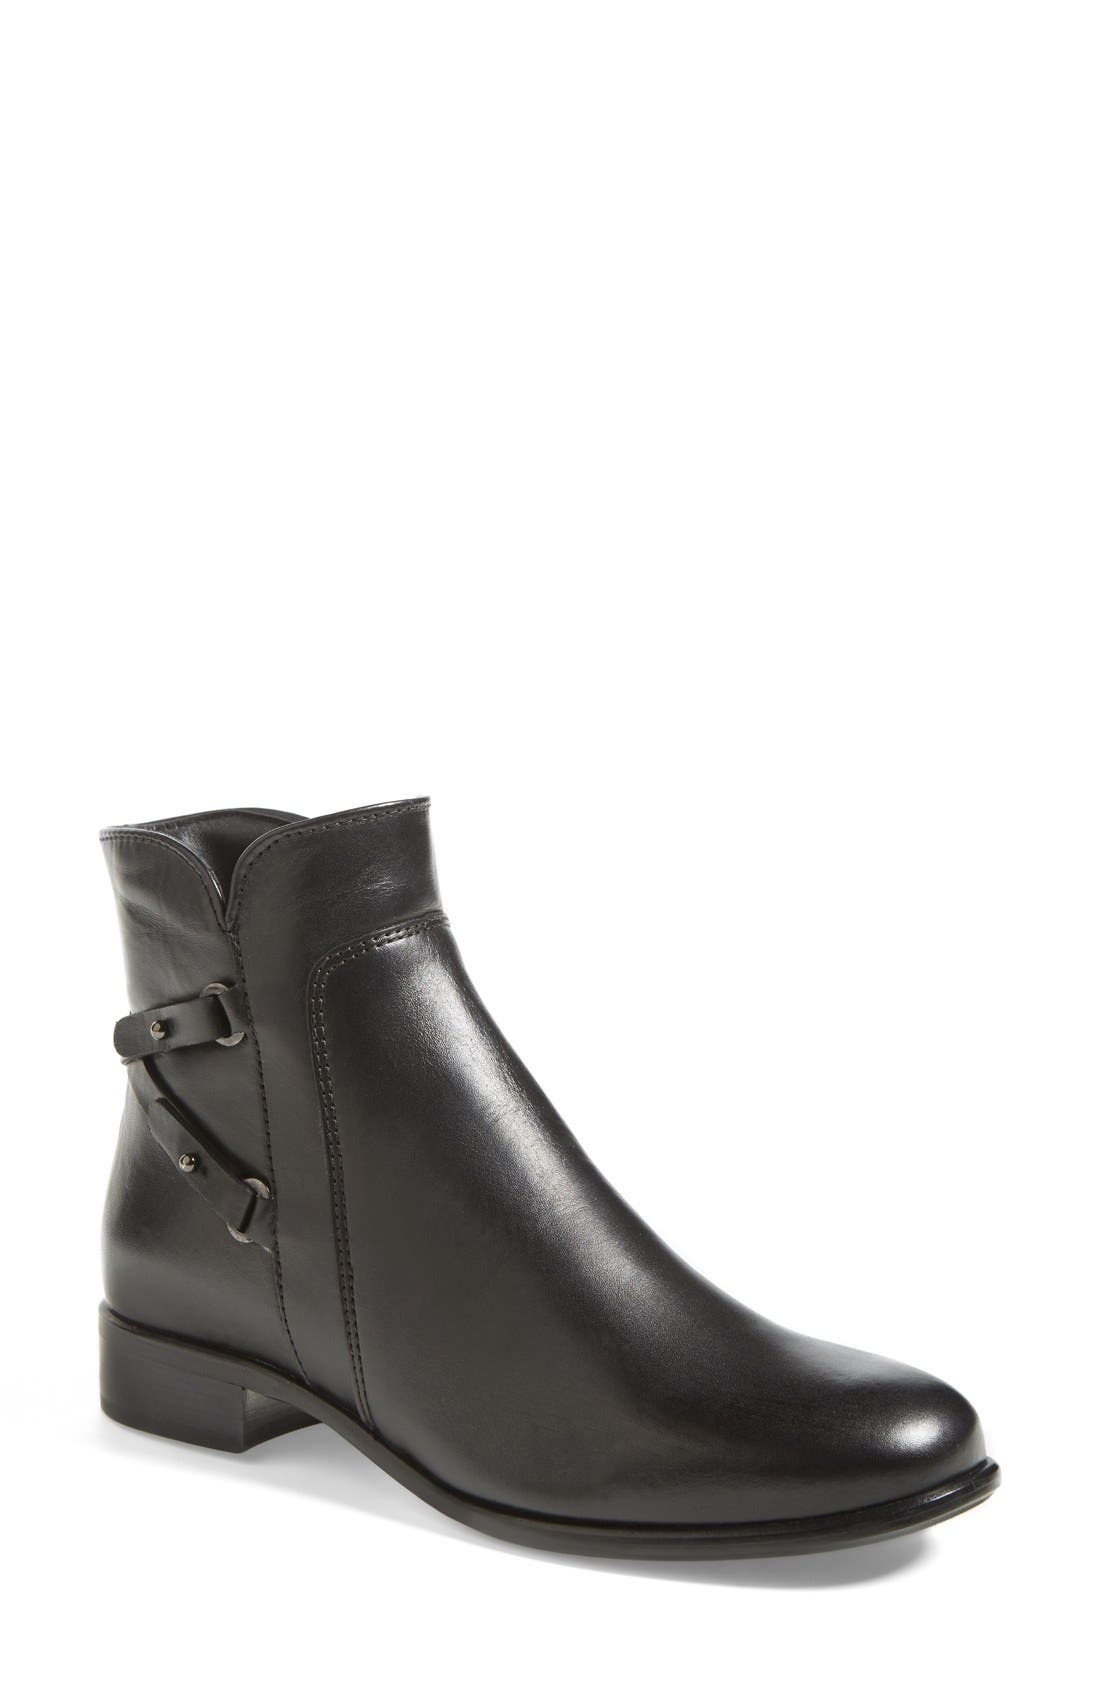 'Sharon' Waterproof Bootie,                         Main,                         color, Black Leather